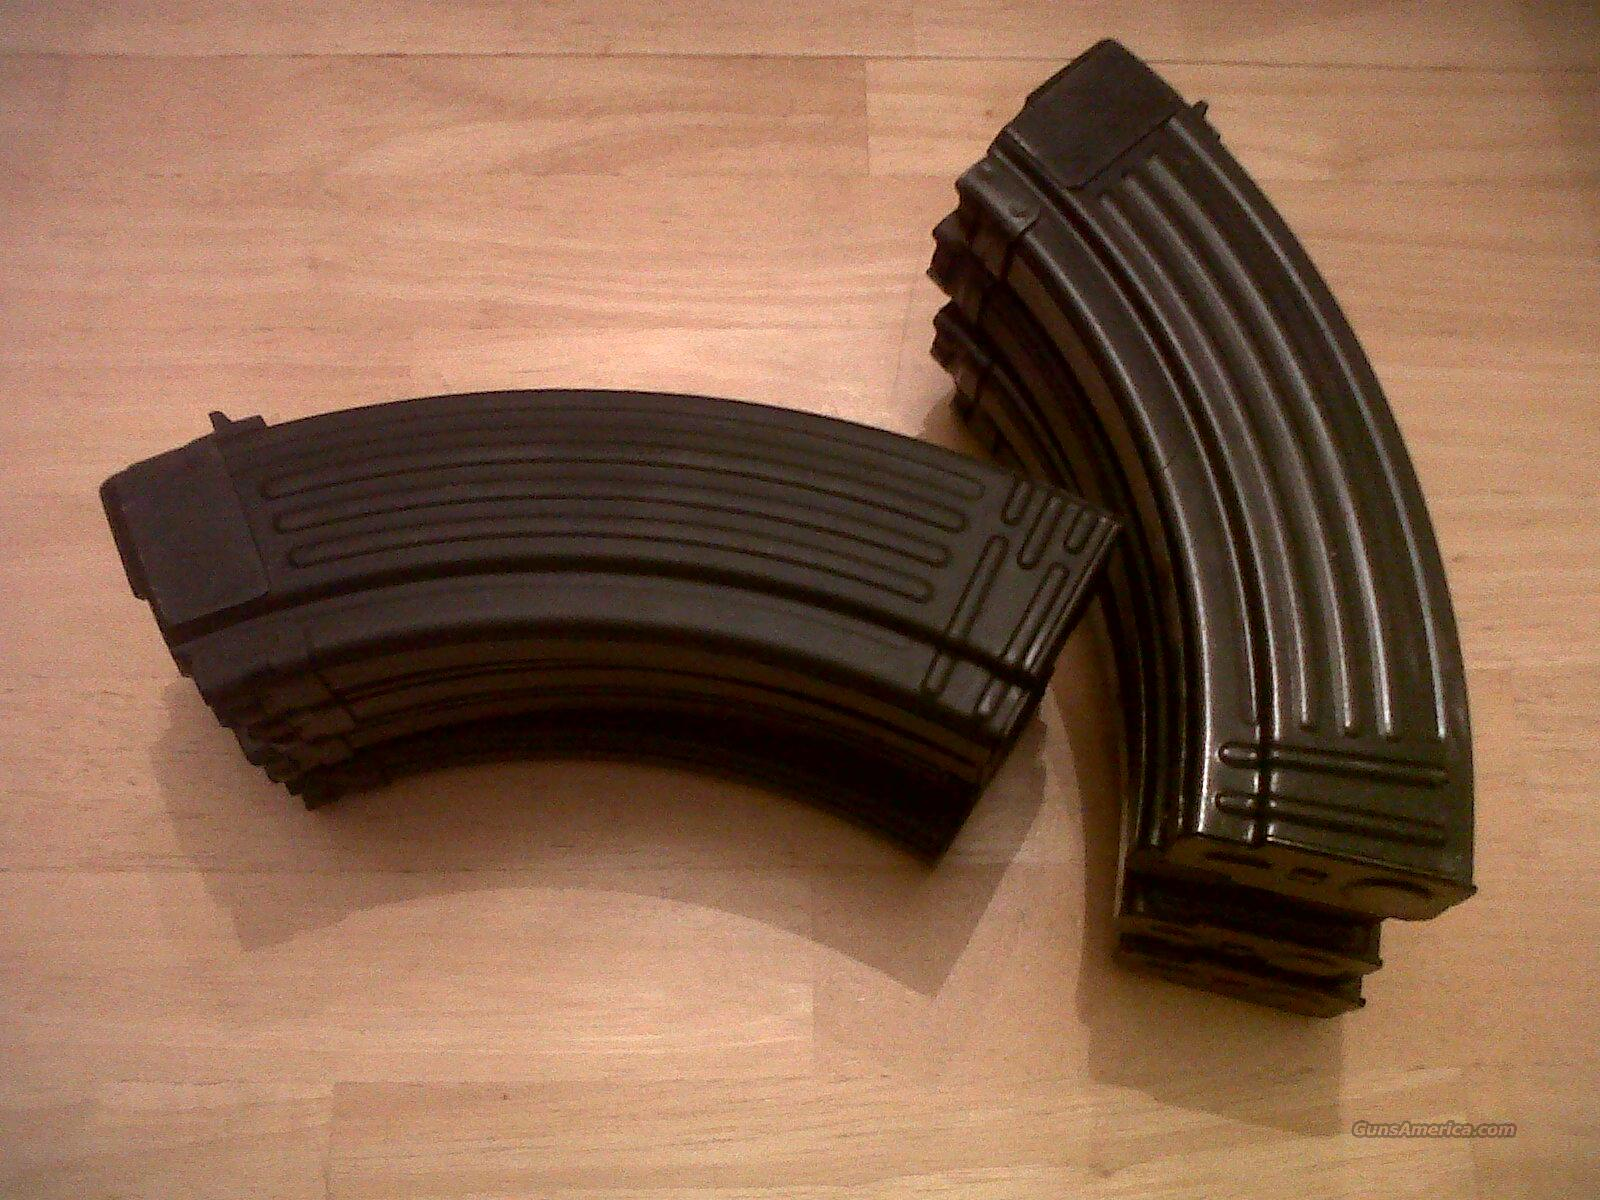 Ak47, 30 round magazine/clips all steel AK 30 round MAGSsome new and some used these are the mags that come with century arm AK's  Non-Guns > Magazines & Clips > Rifle Magazines > AK Family